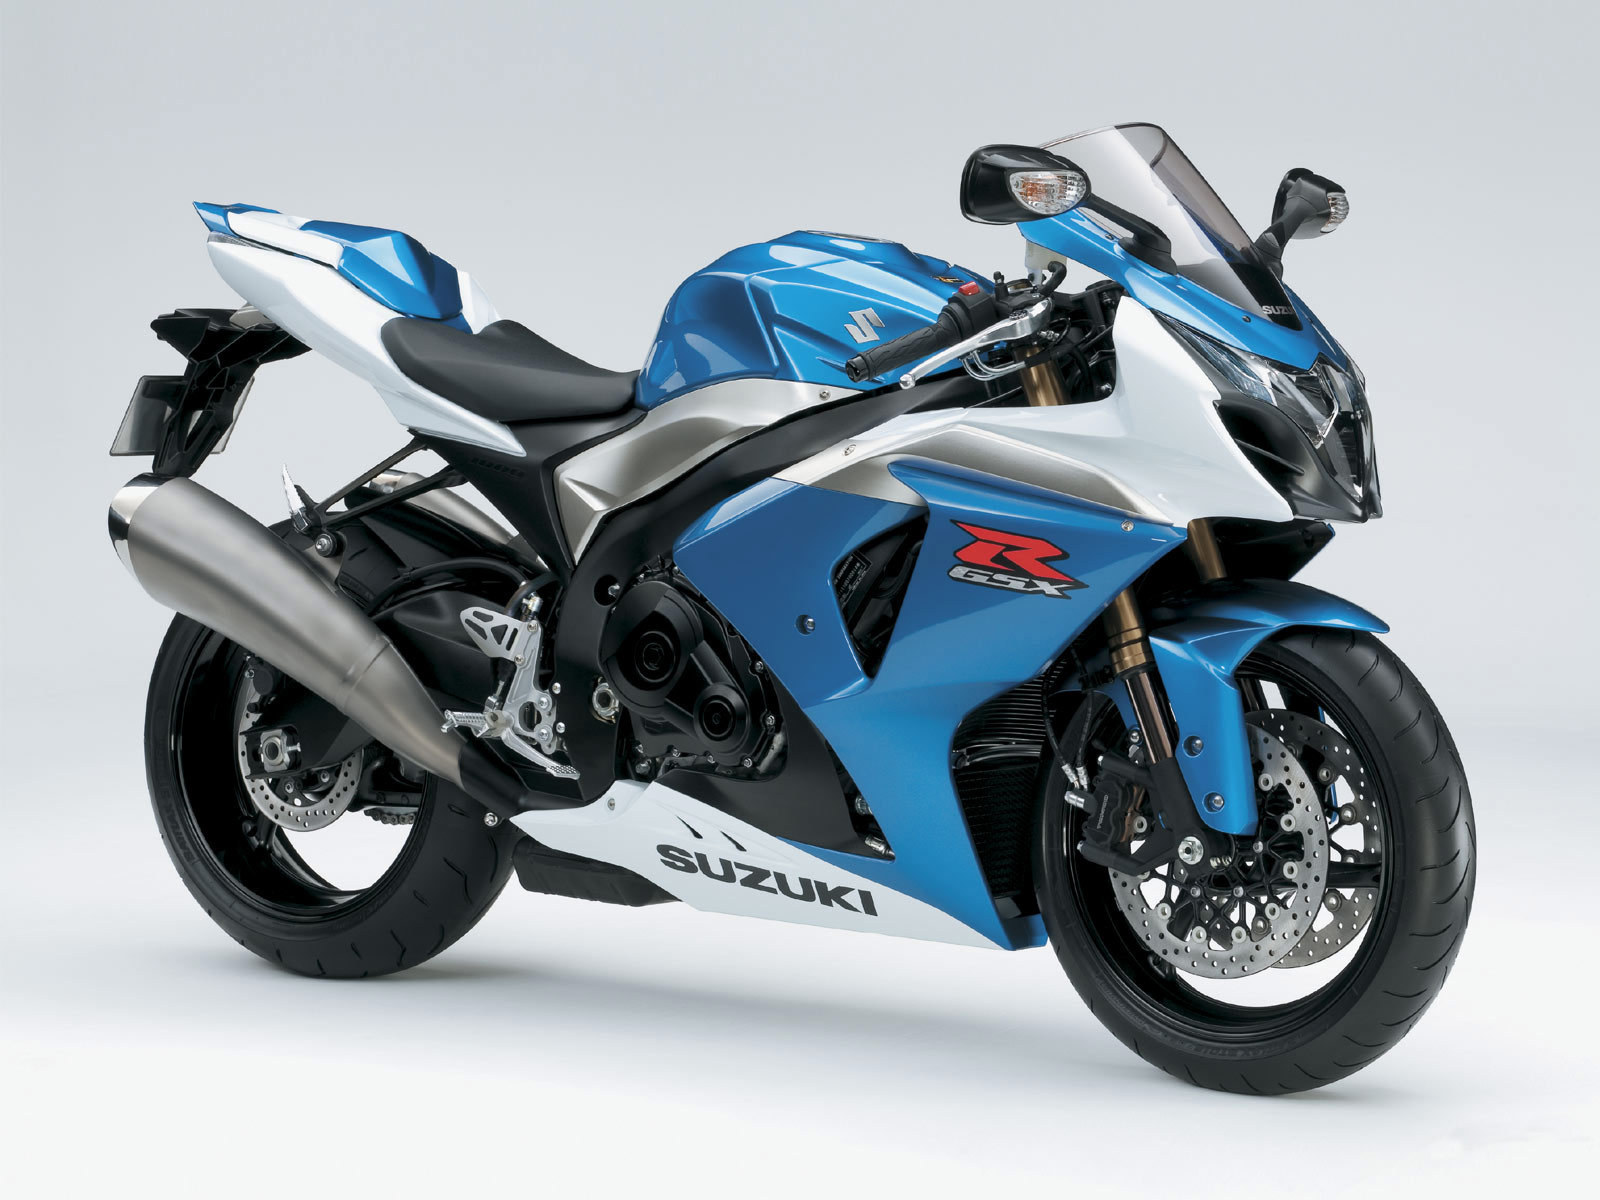 Suzuki Gsx R 1000 Motorcycles Wallpaper 14486725 Fanpop